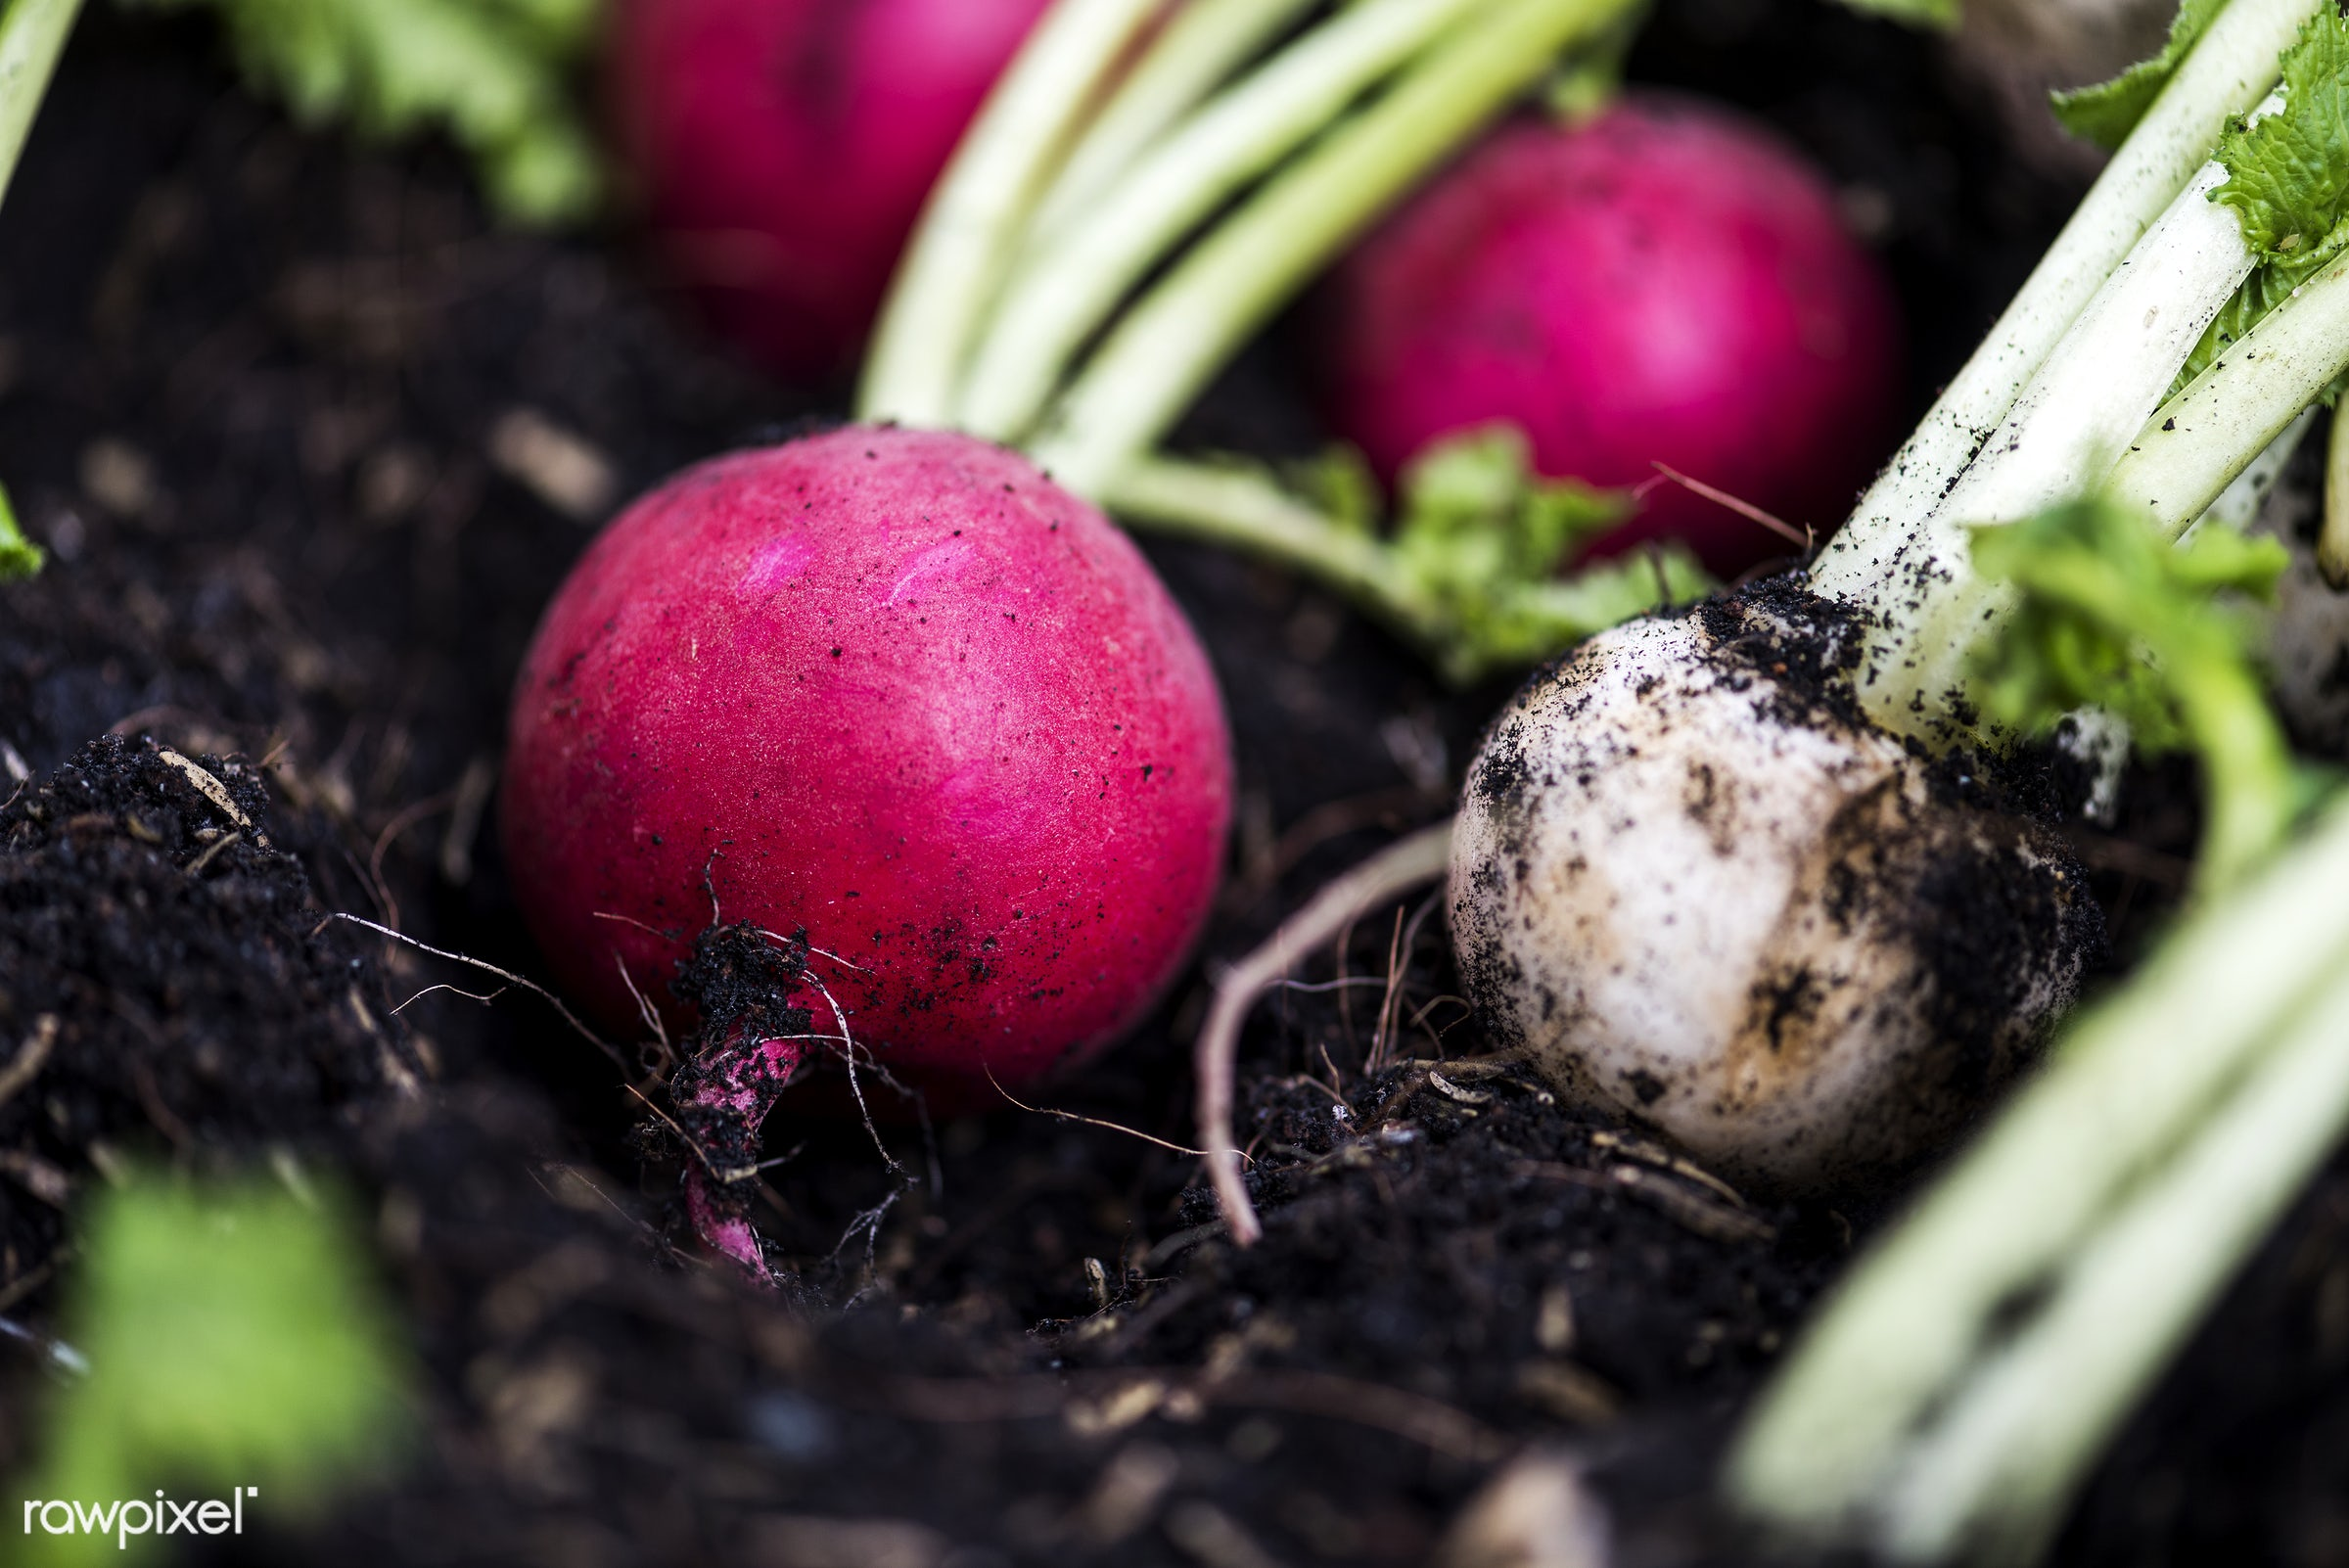 Radishes - raw, nobody, ingredients, farm, nature, fresh, turnip, dirt, products, closeup, white, agriculture, radish,...